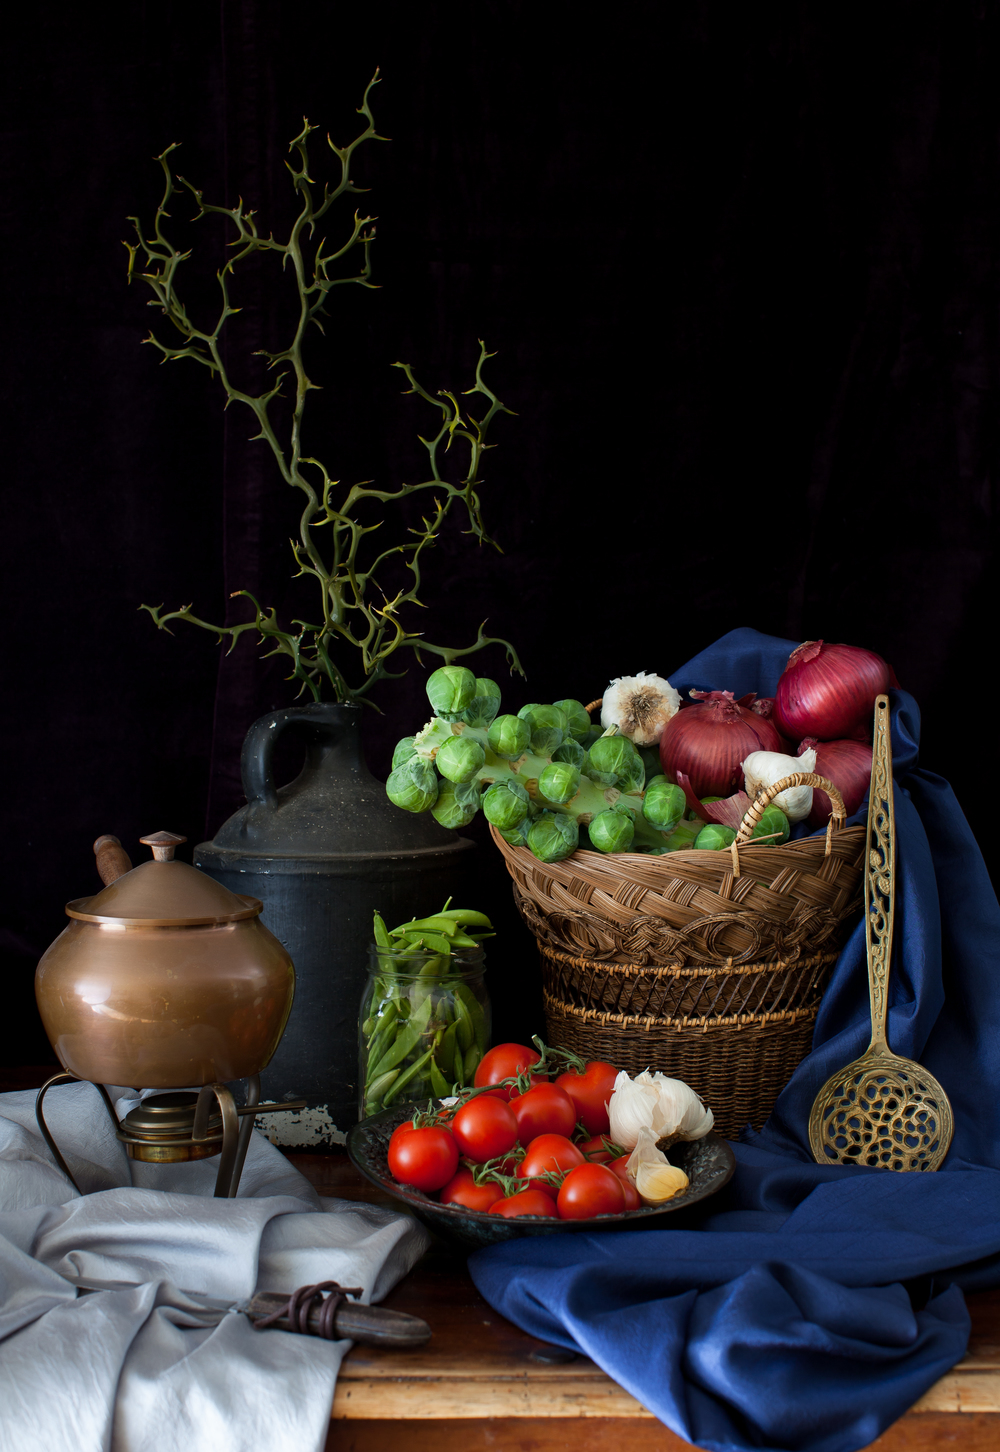 Still Life with Vegetables 2013